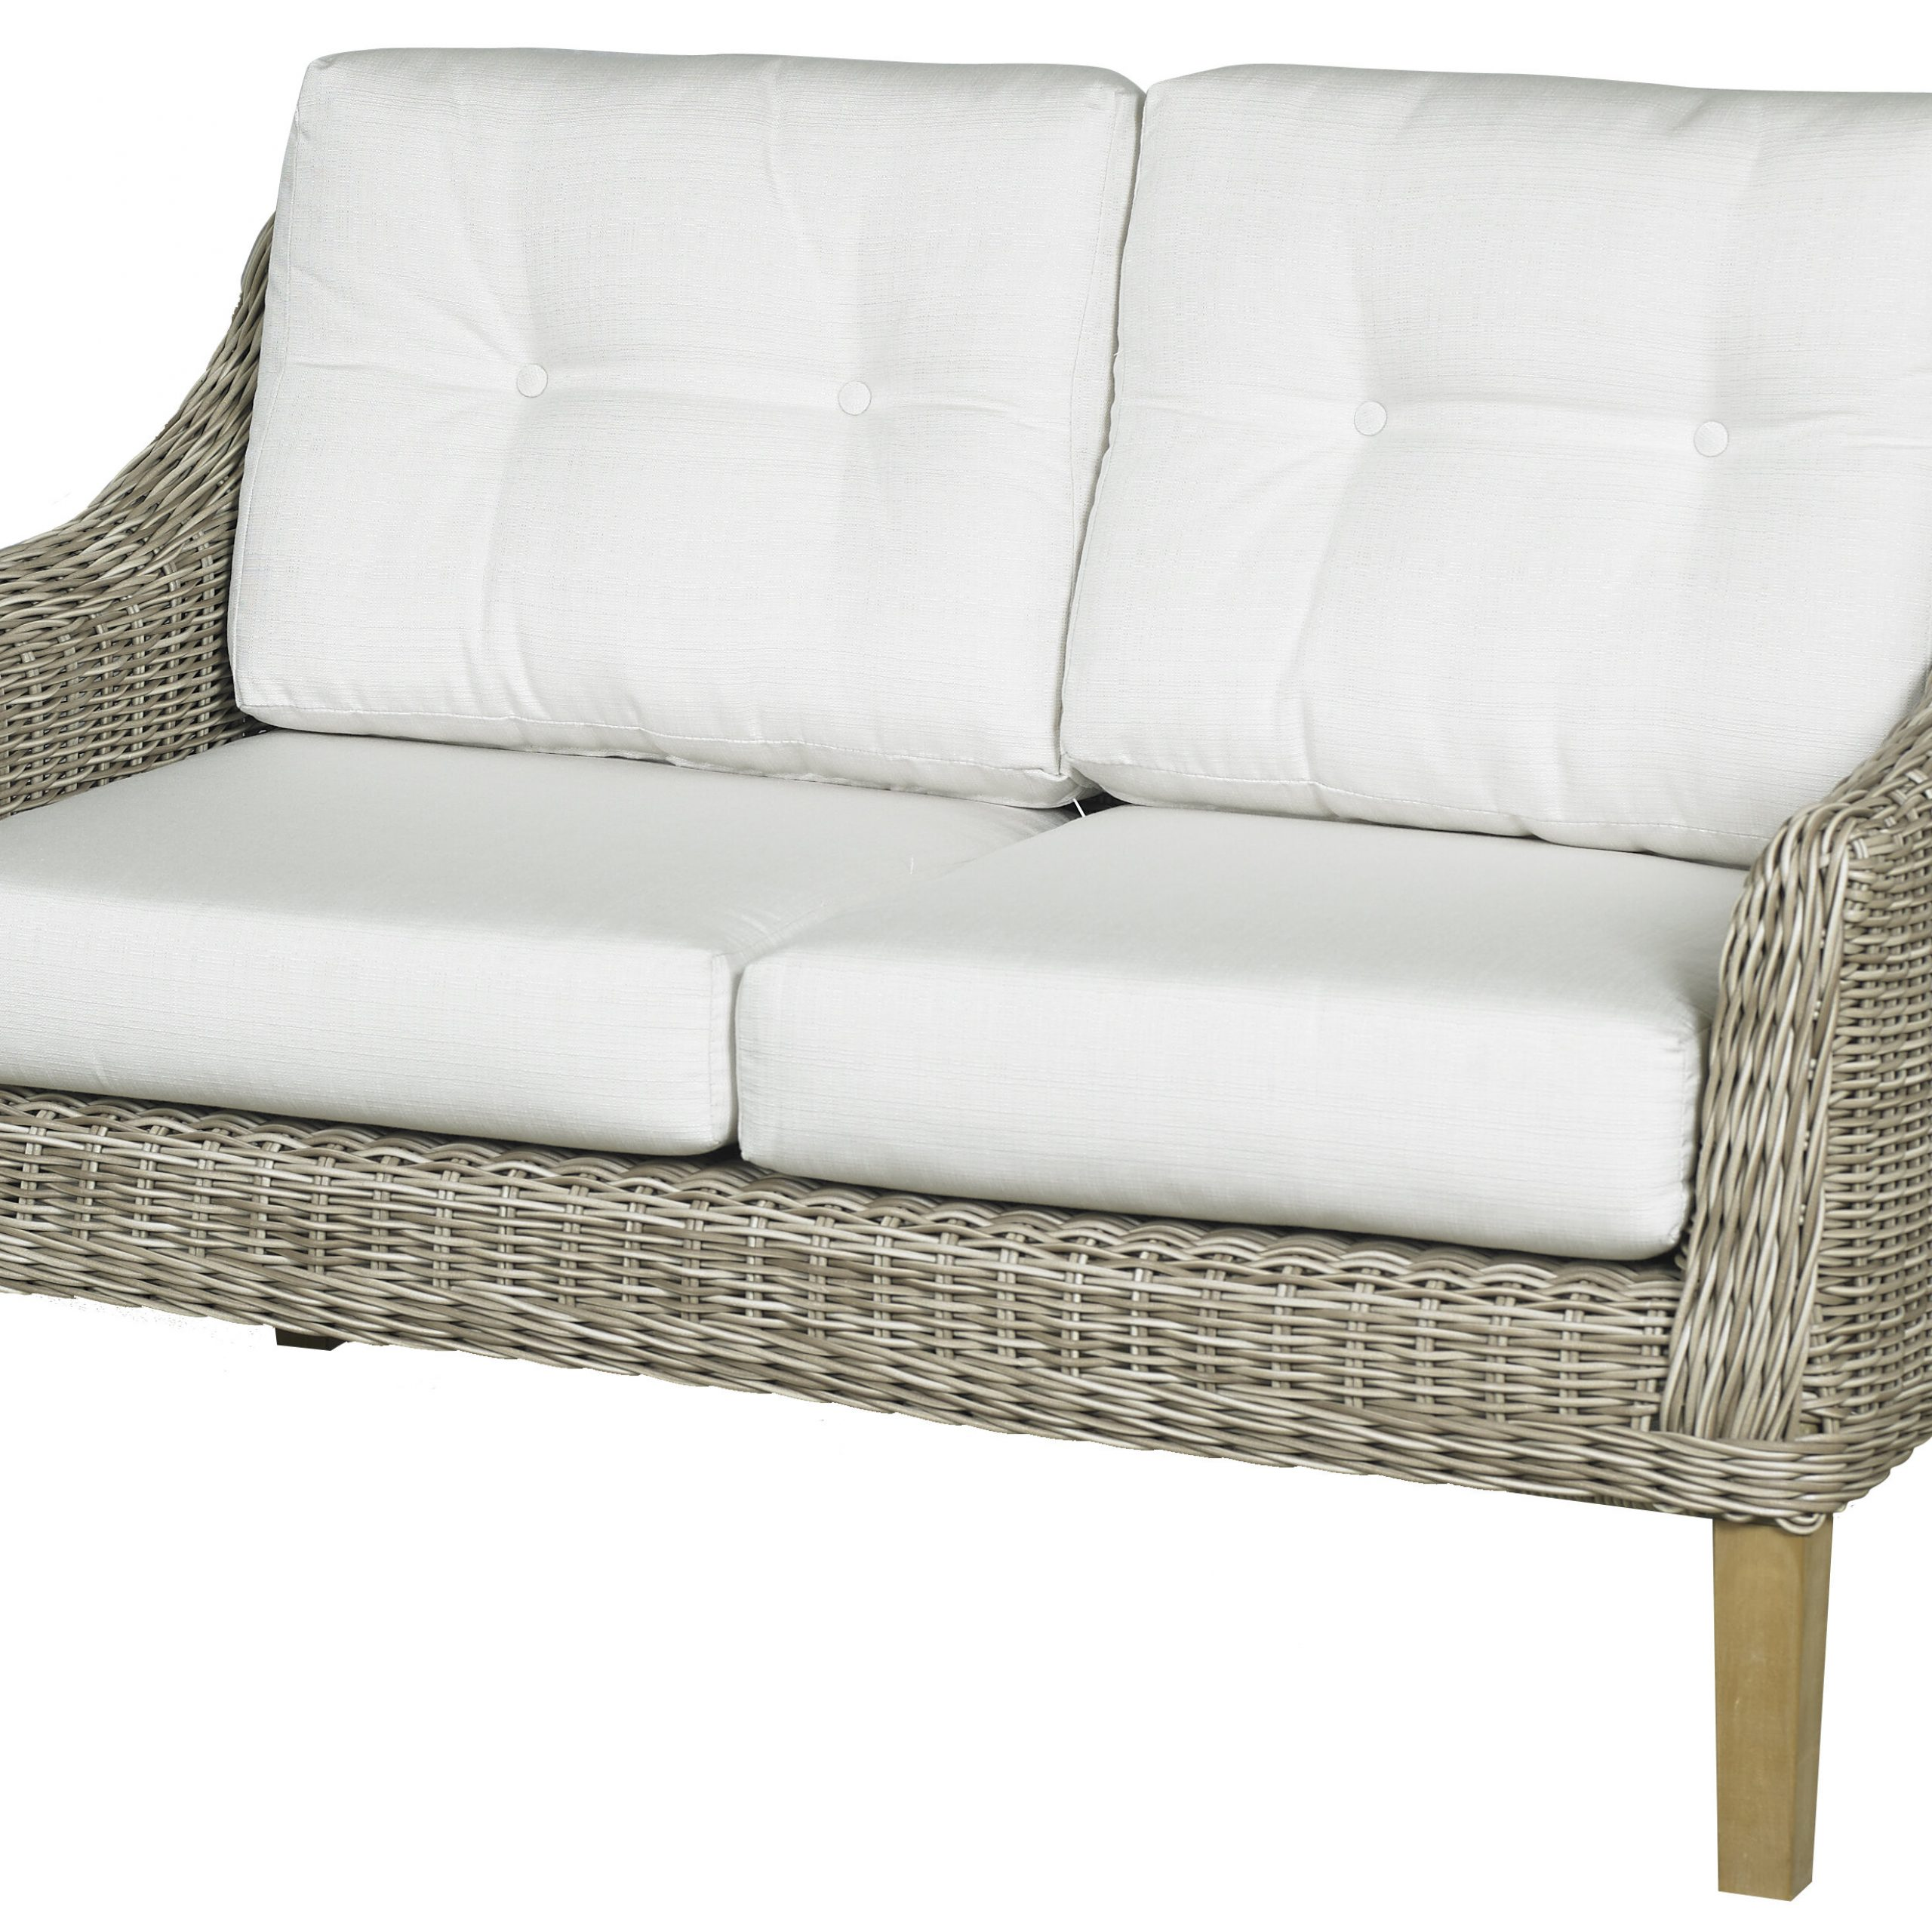 Most Current Wakeland Wicker Loveseats With Cushions Inside Forever Patio Carlisle Loveseat With Cushions (Gallery 22 of 25)